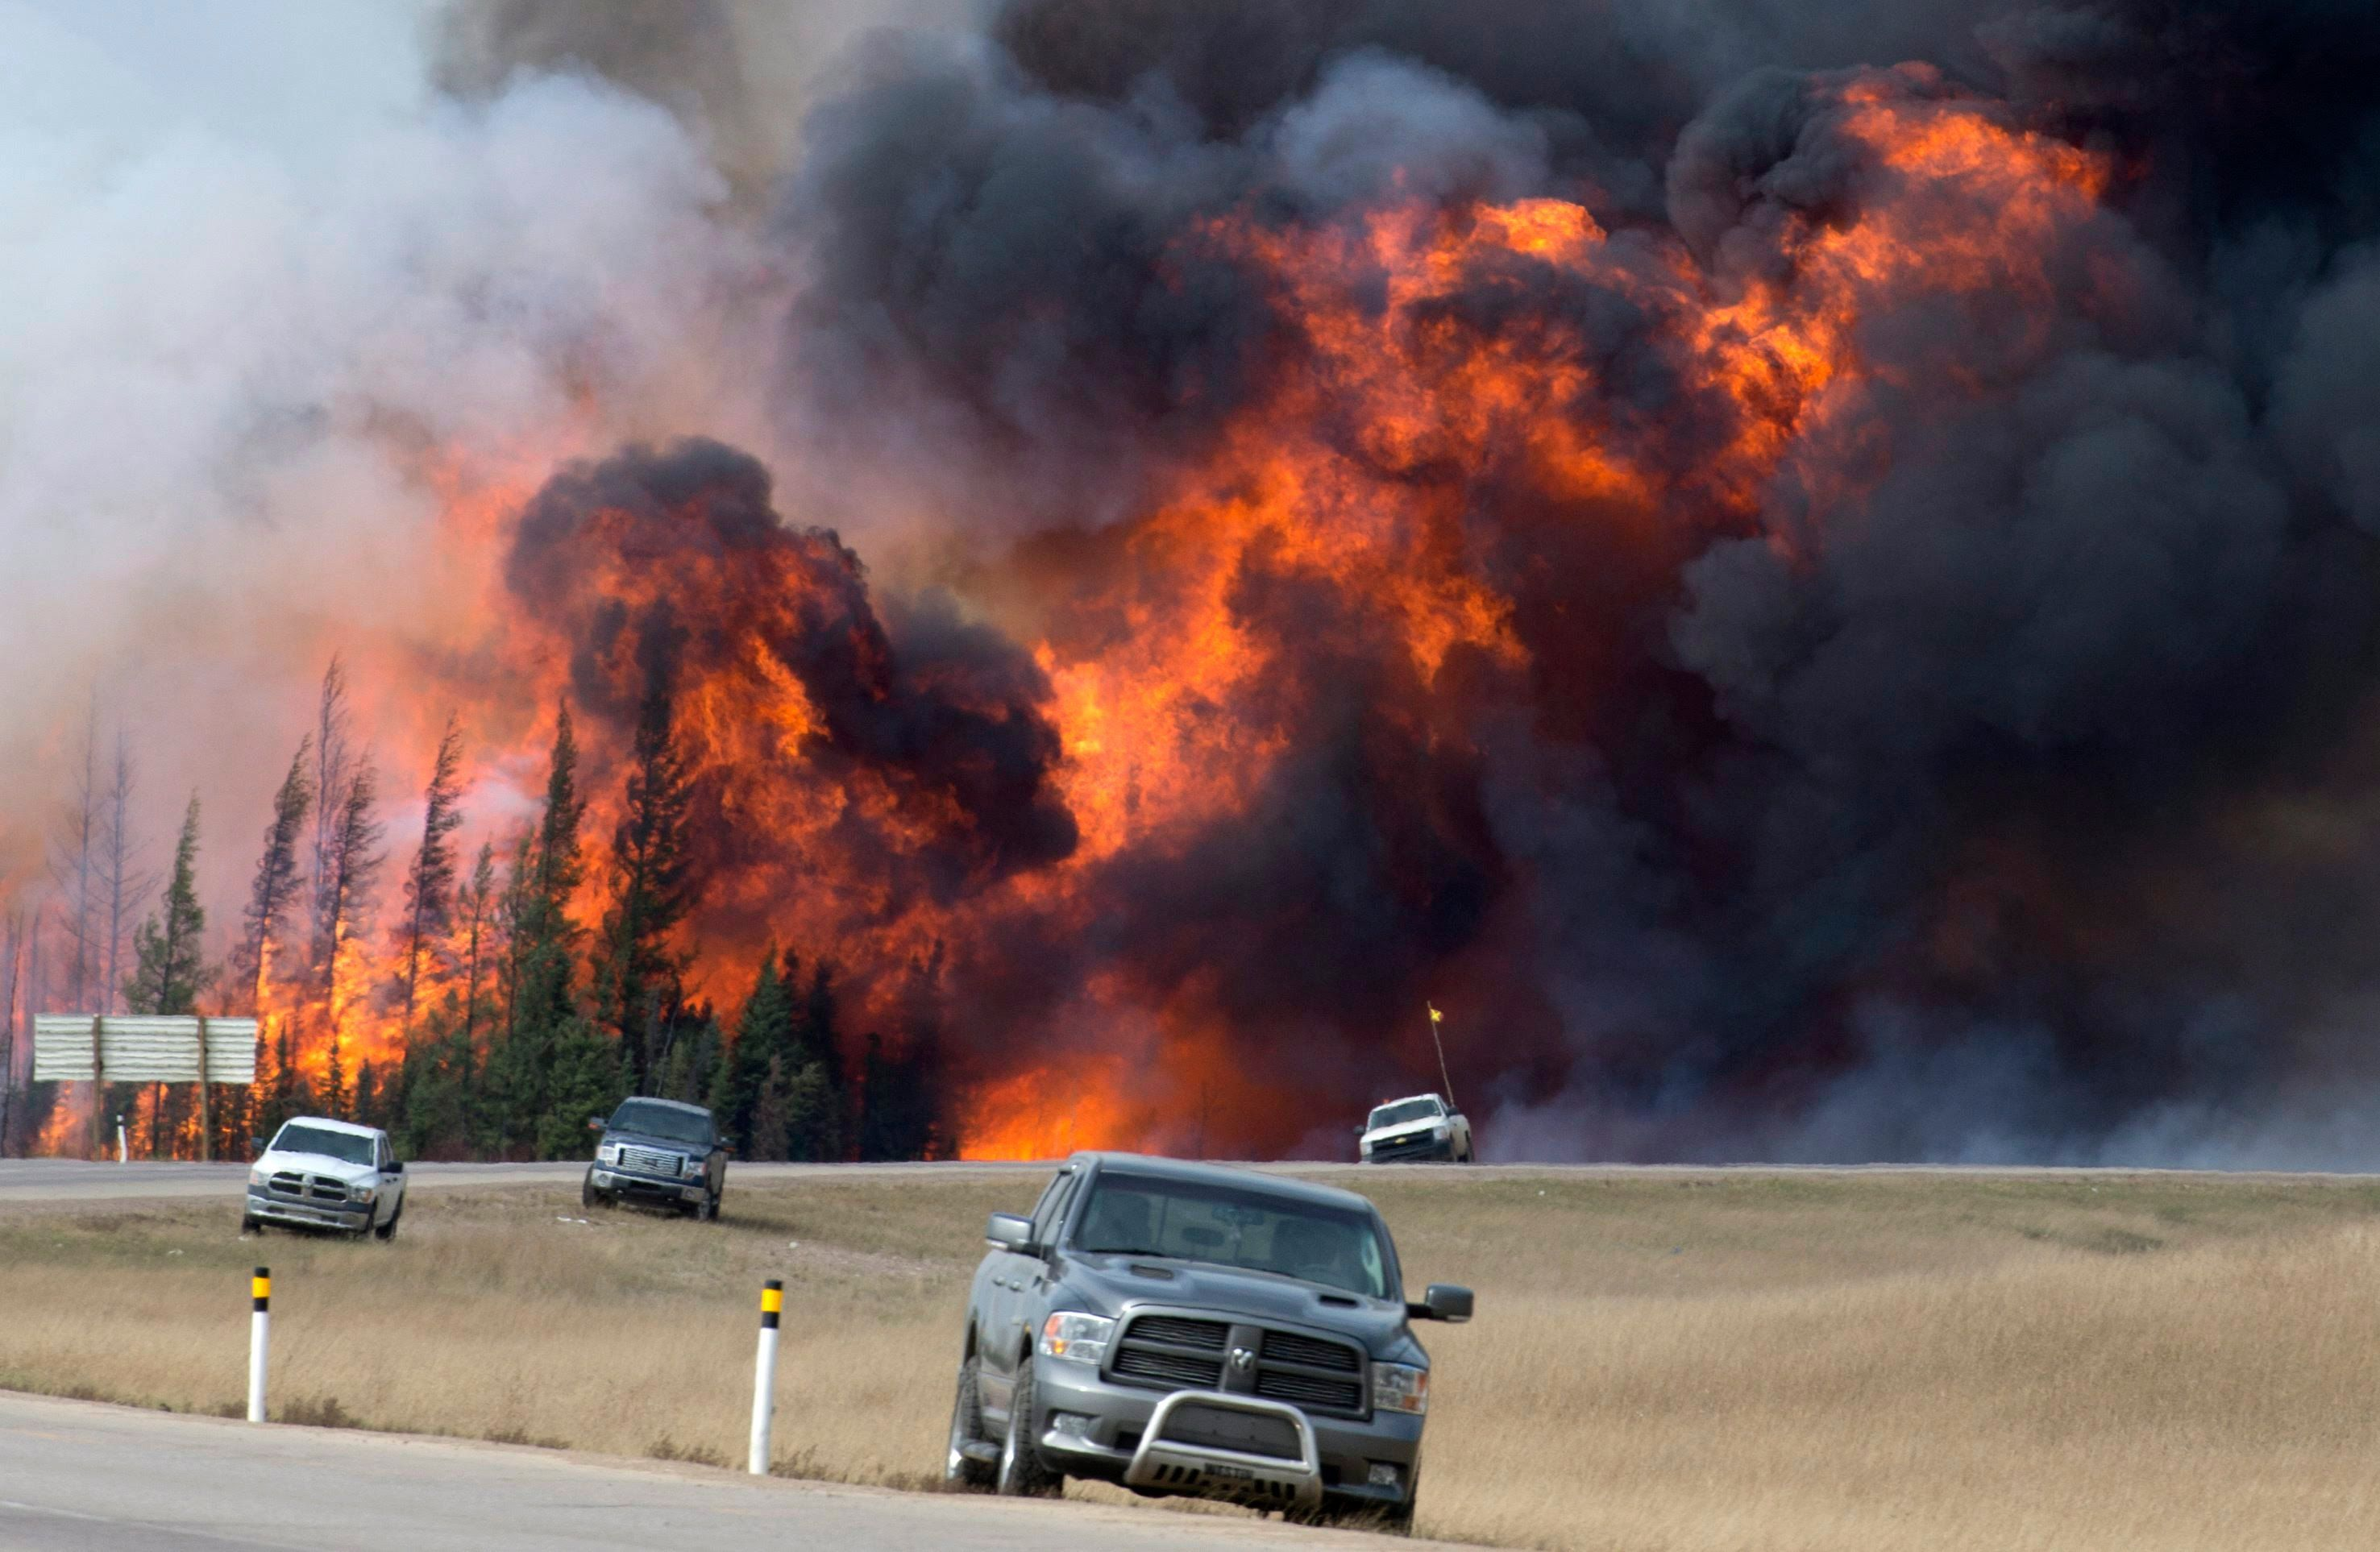 fr 5/12/16 (Note: Def Not Global Warming!) What Caused The Fort McMurray Fire?